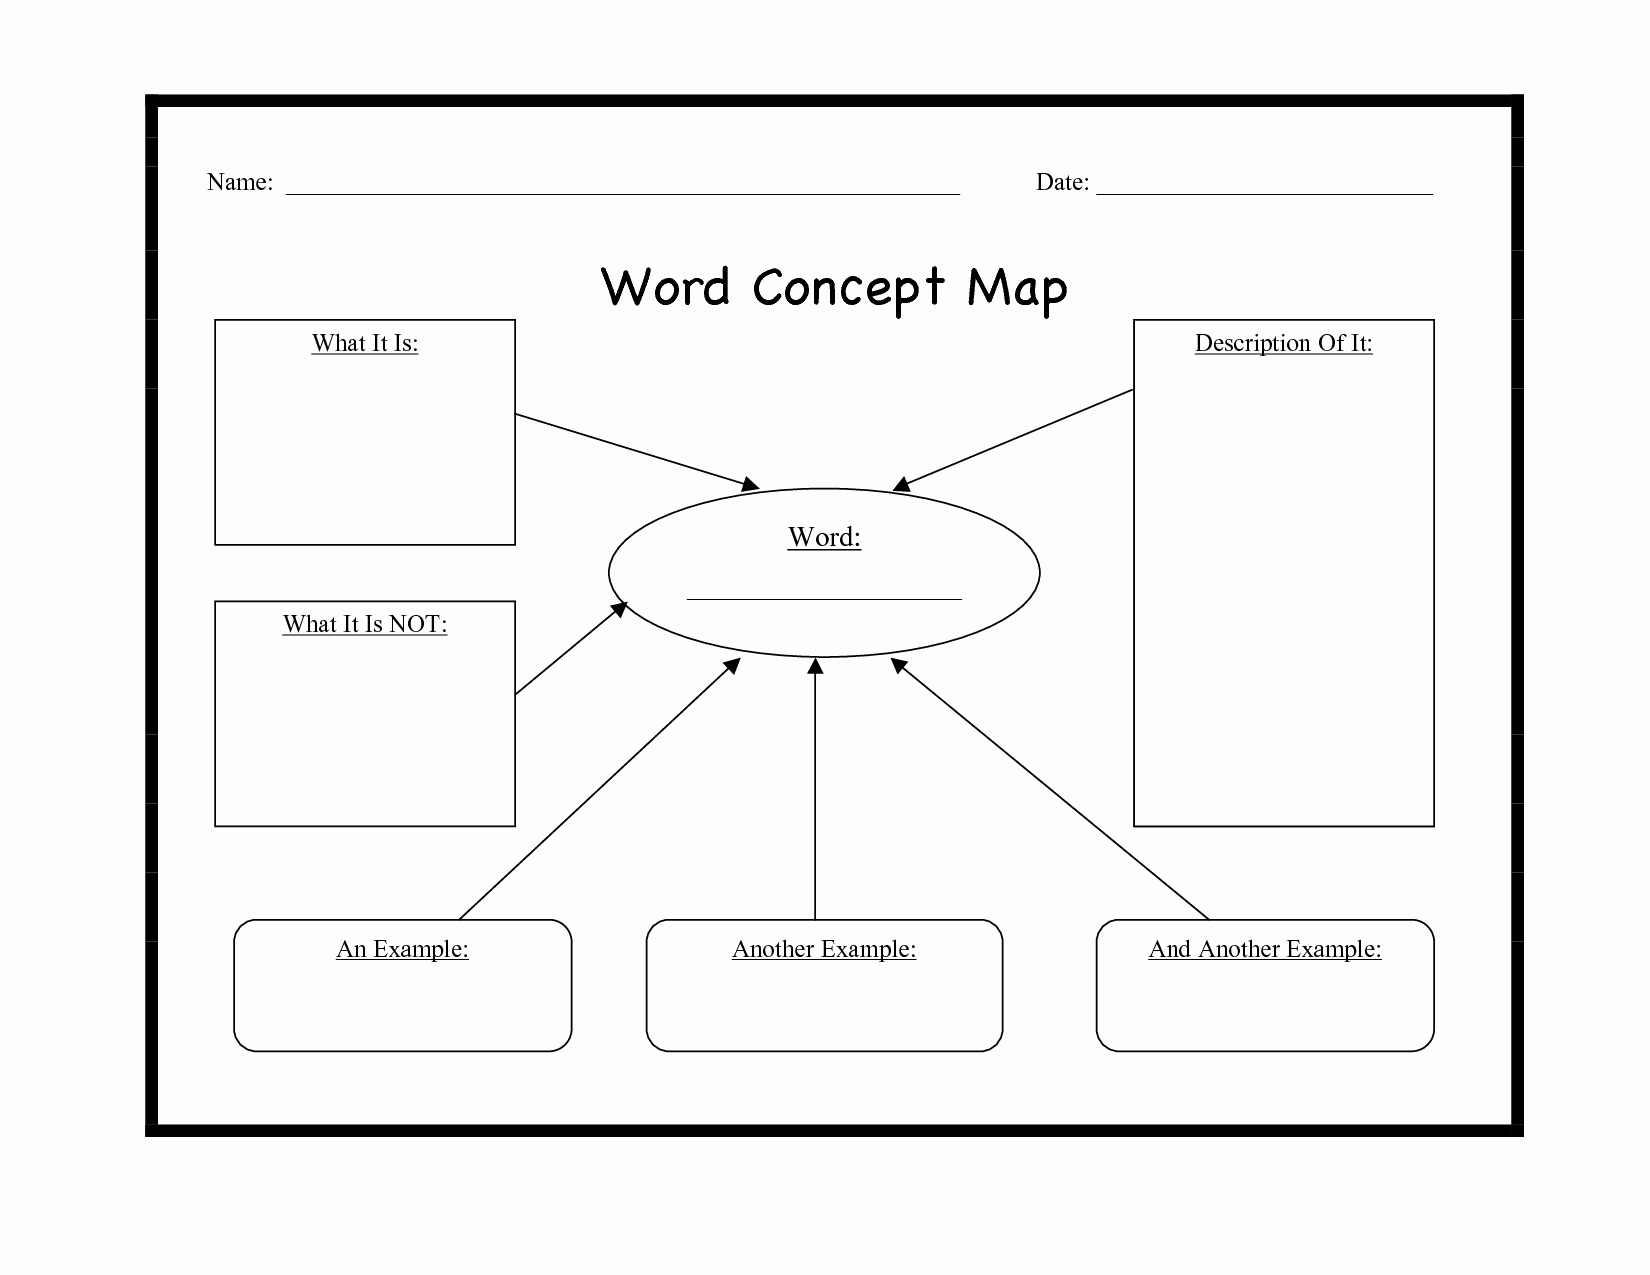 Nursing Concept Map Template Luxury Concept Map Template